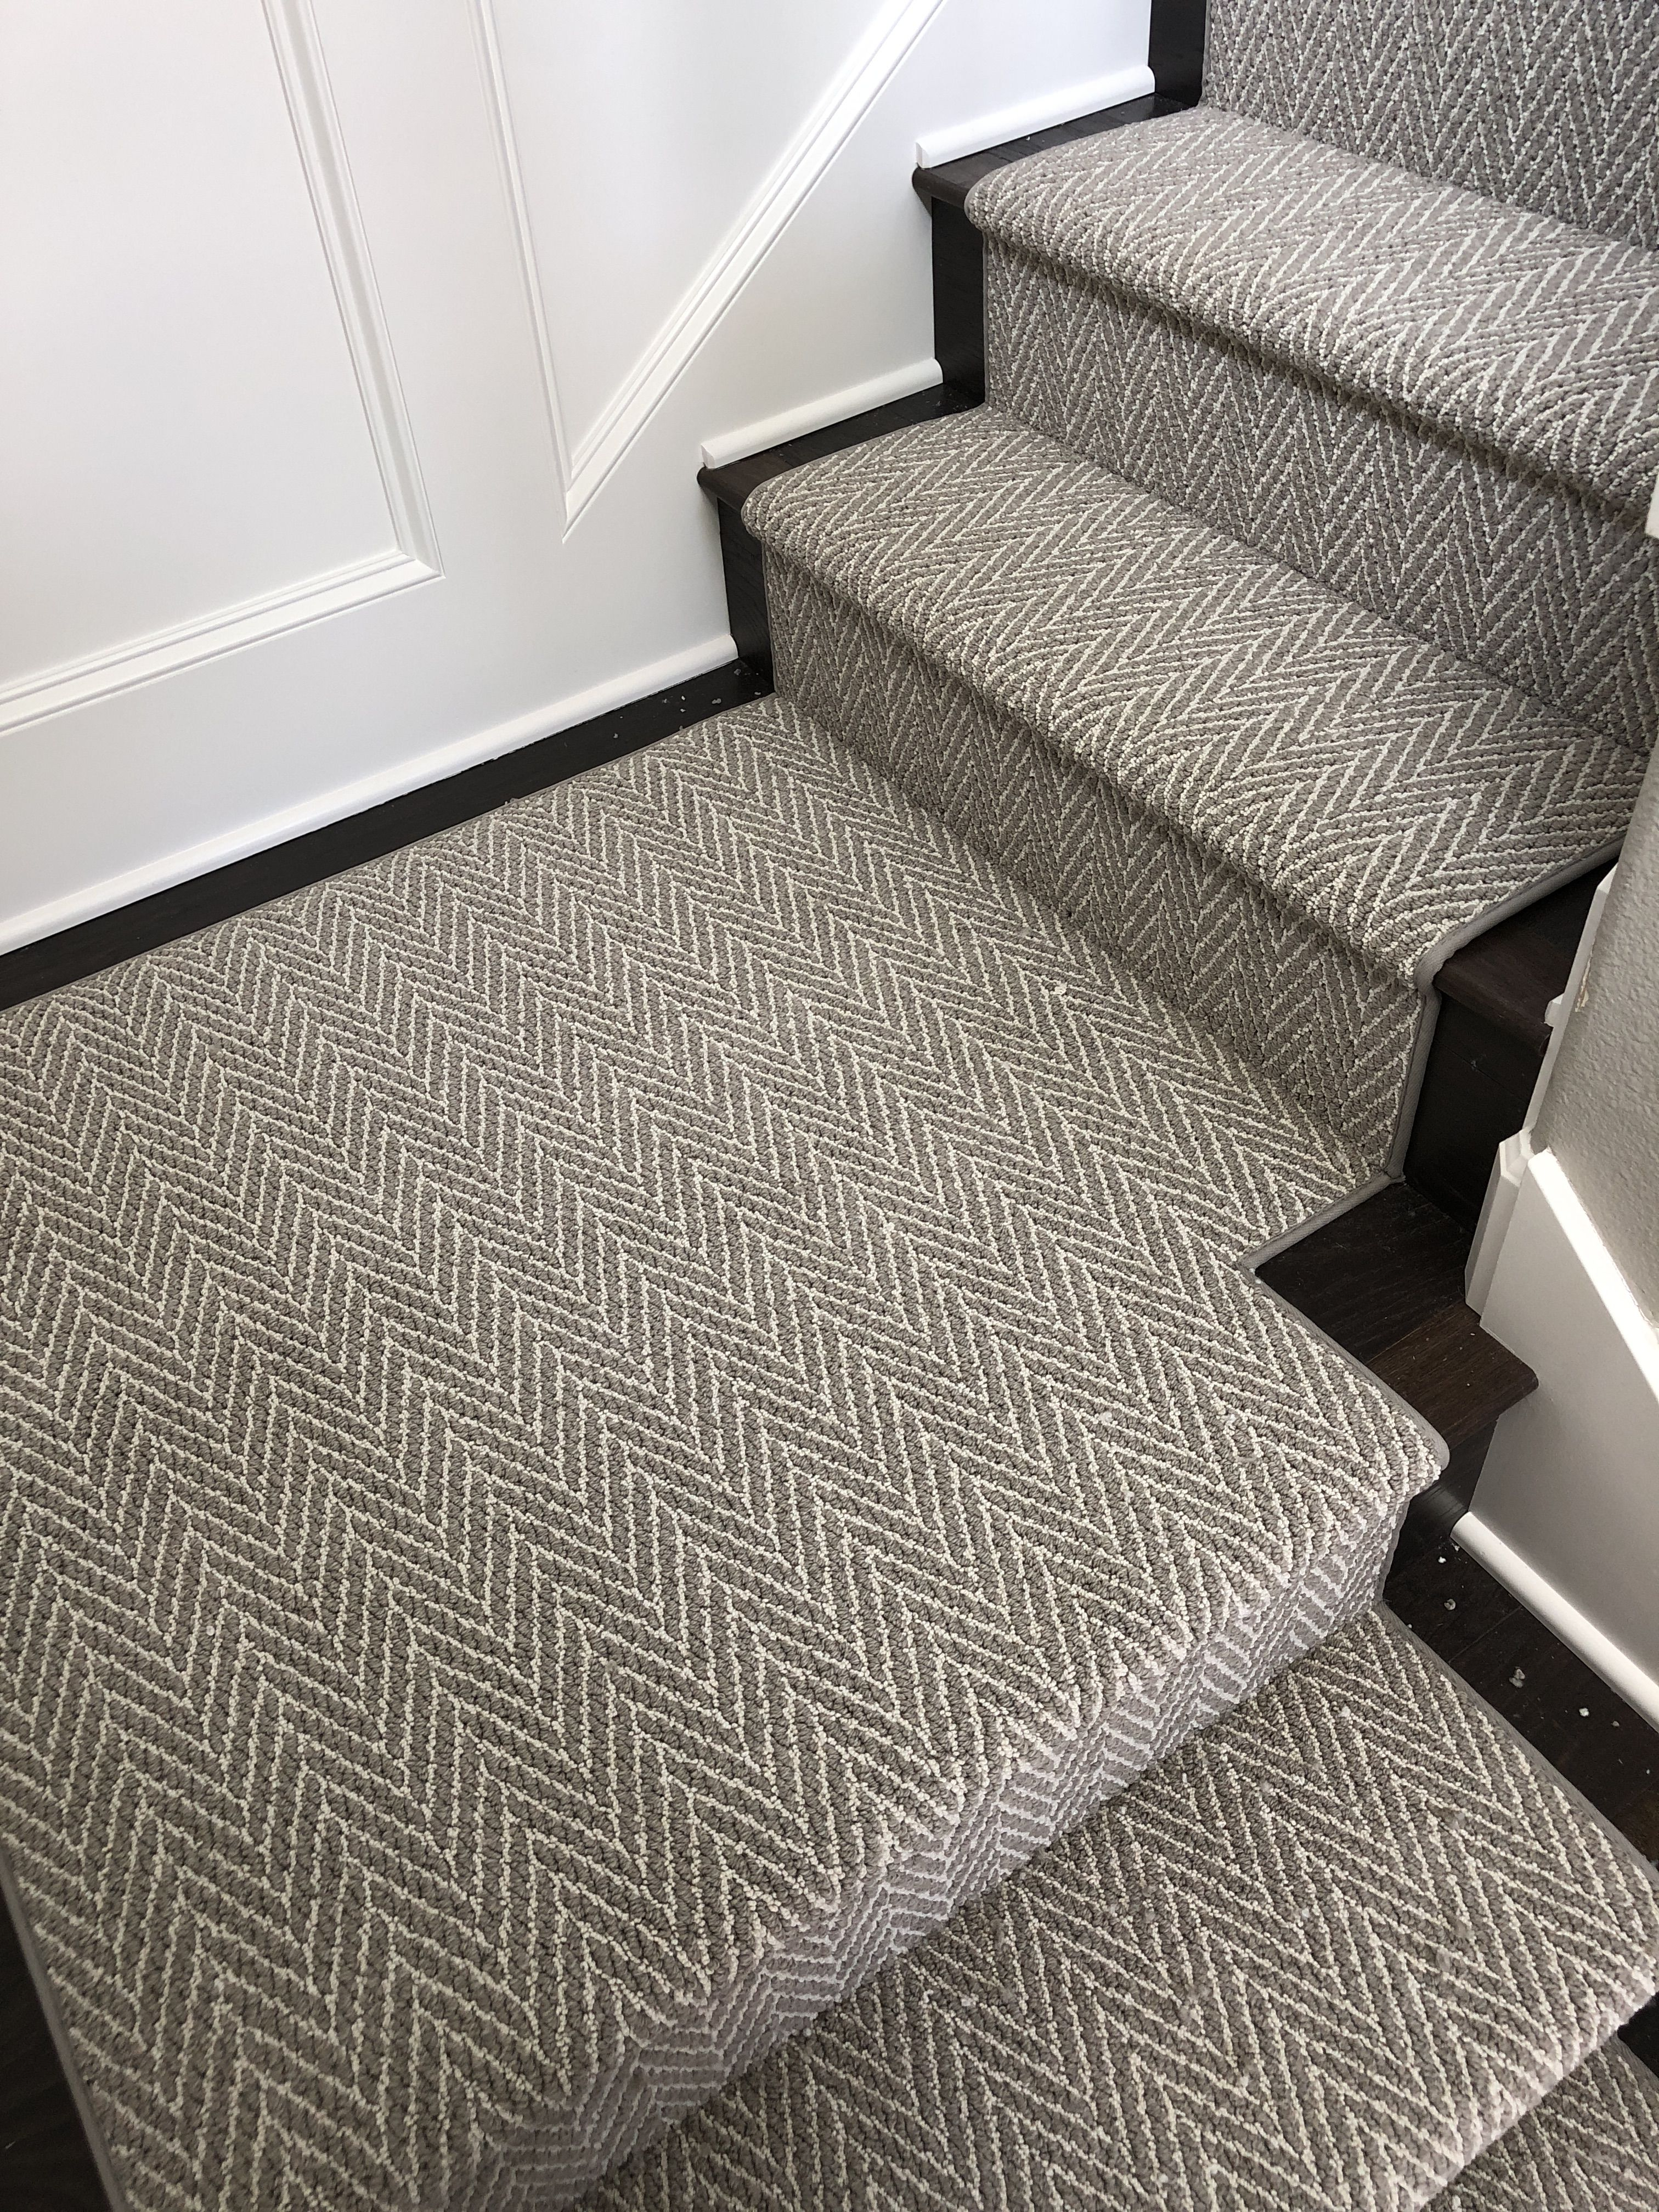 This Herringbone Carpet Stair Runner Is Stair Goals Gorgeous   Durable Carpet For Stairs   Straight   Trendy   Different Style Stair   Hallway   Stair Residential